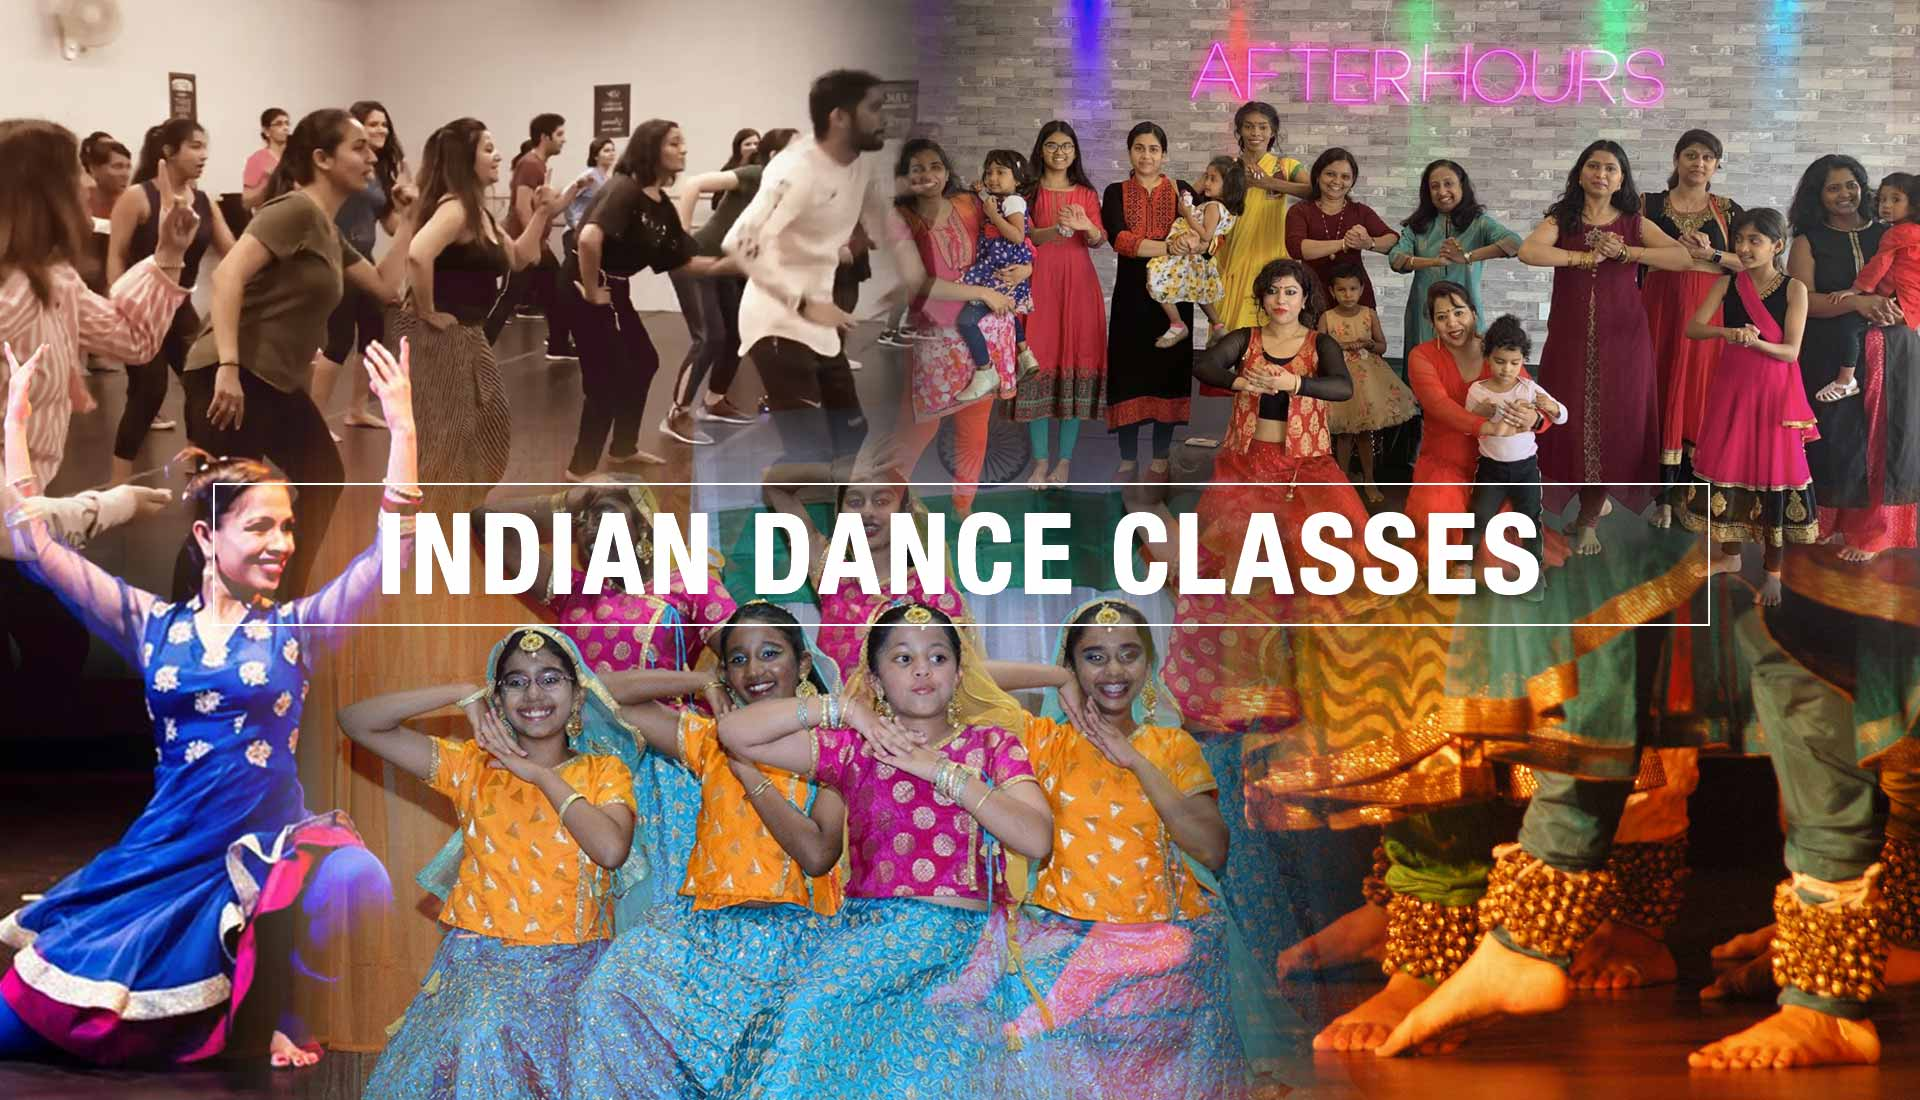 Indian Dance Classes in Orange County by Our Indian Culture